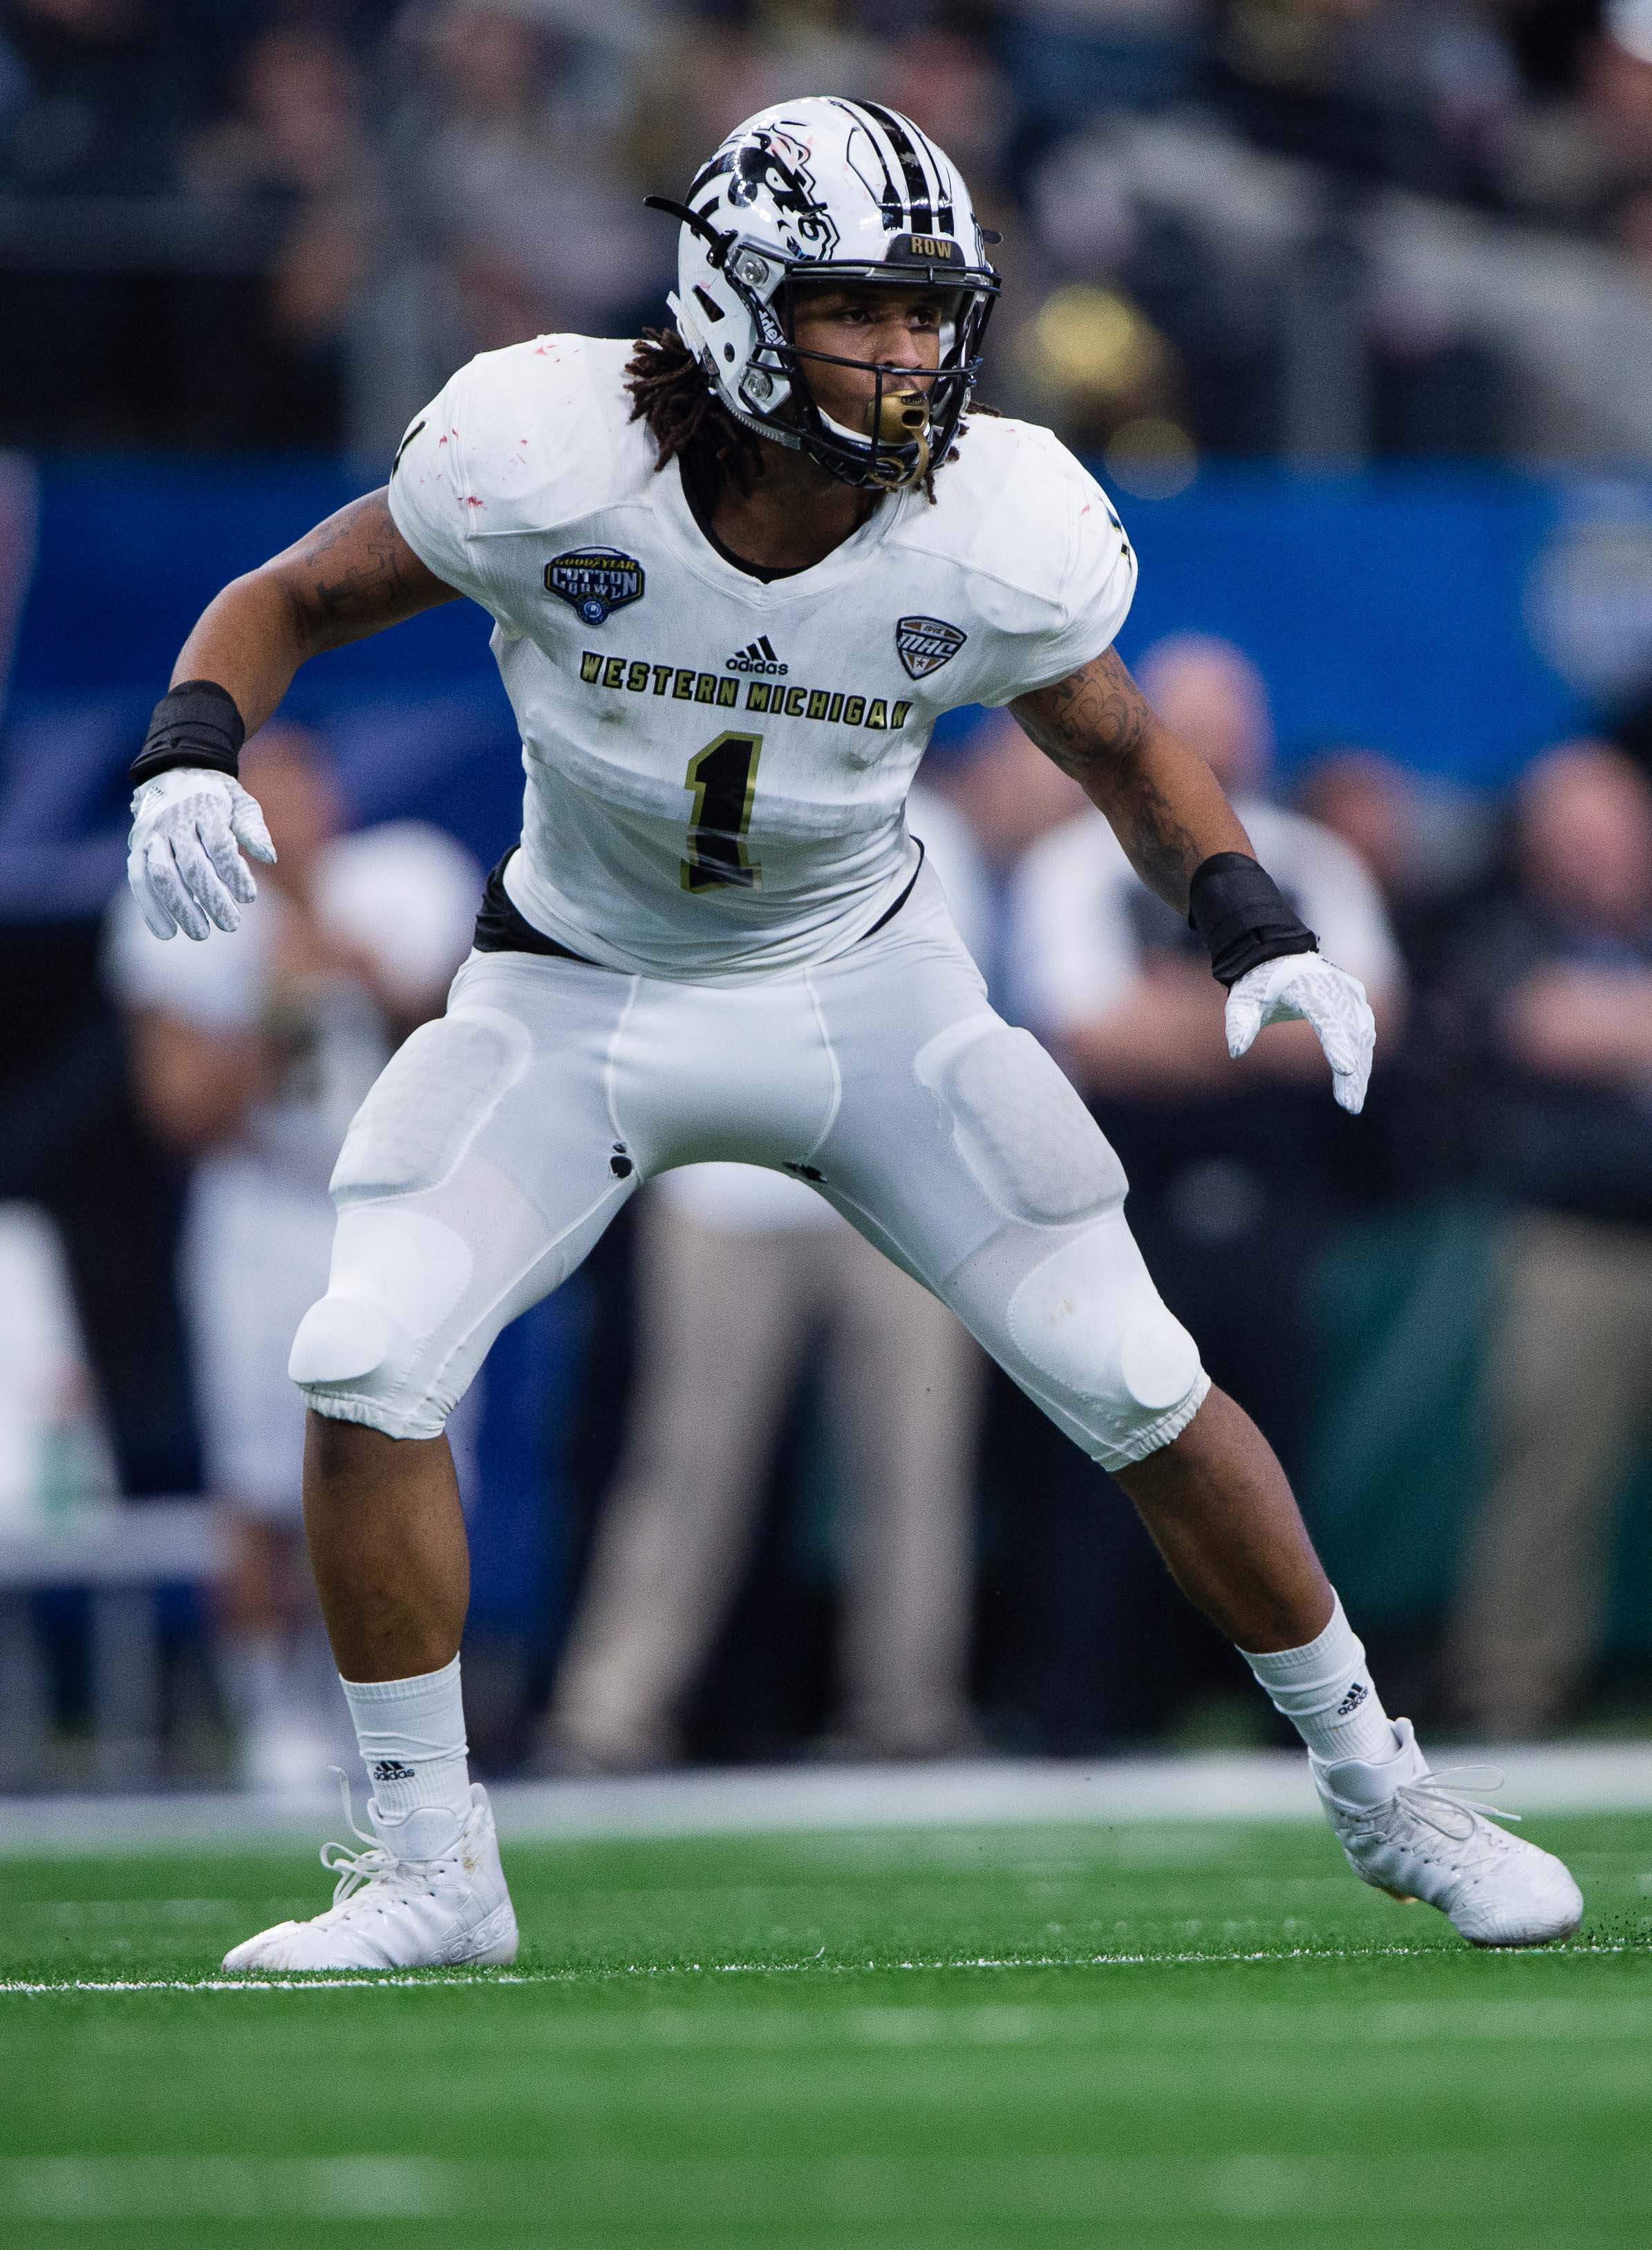 a93fd5f36fc 2017 NFL Draft Results  Pittsburgh Steelers select OLB Keion Adams with  seventh round pick